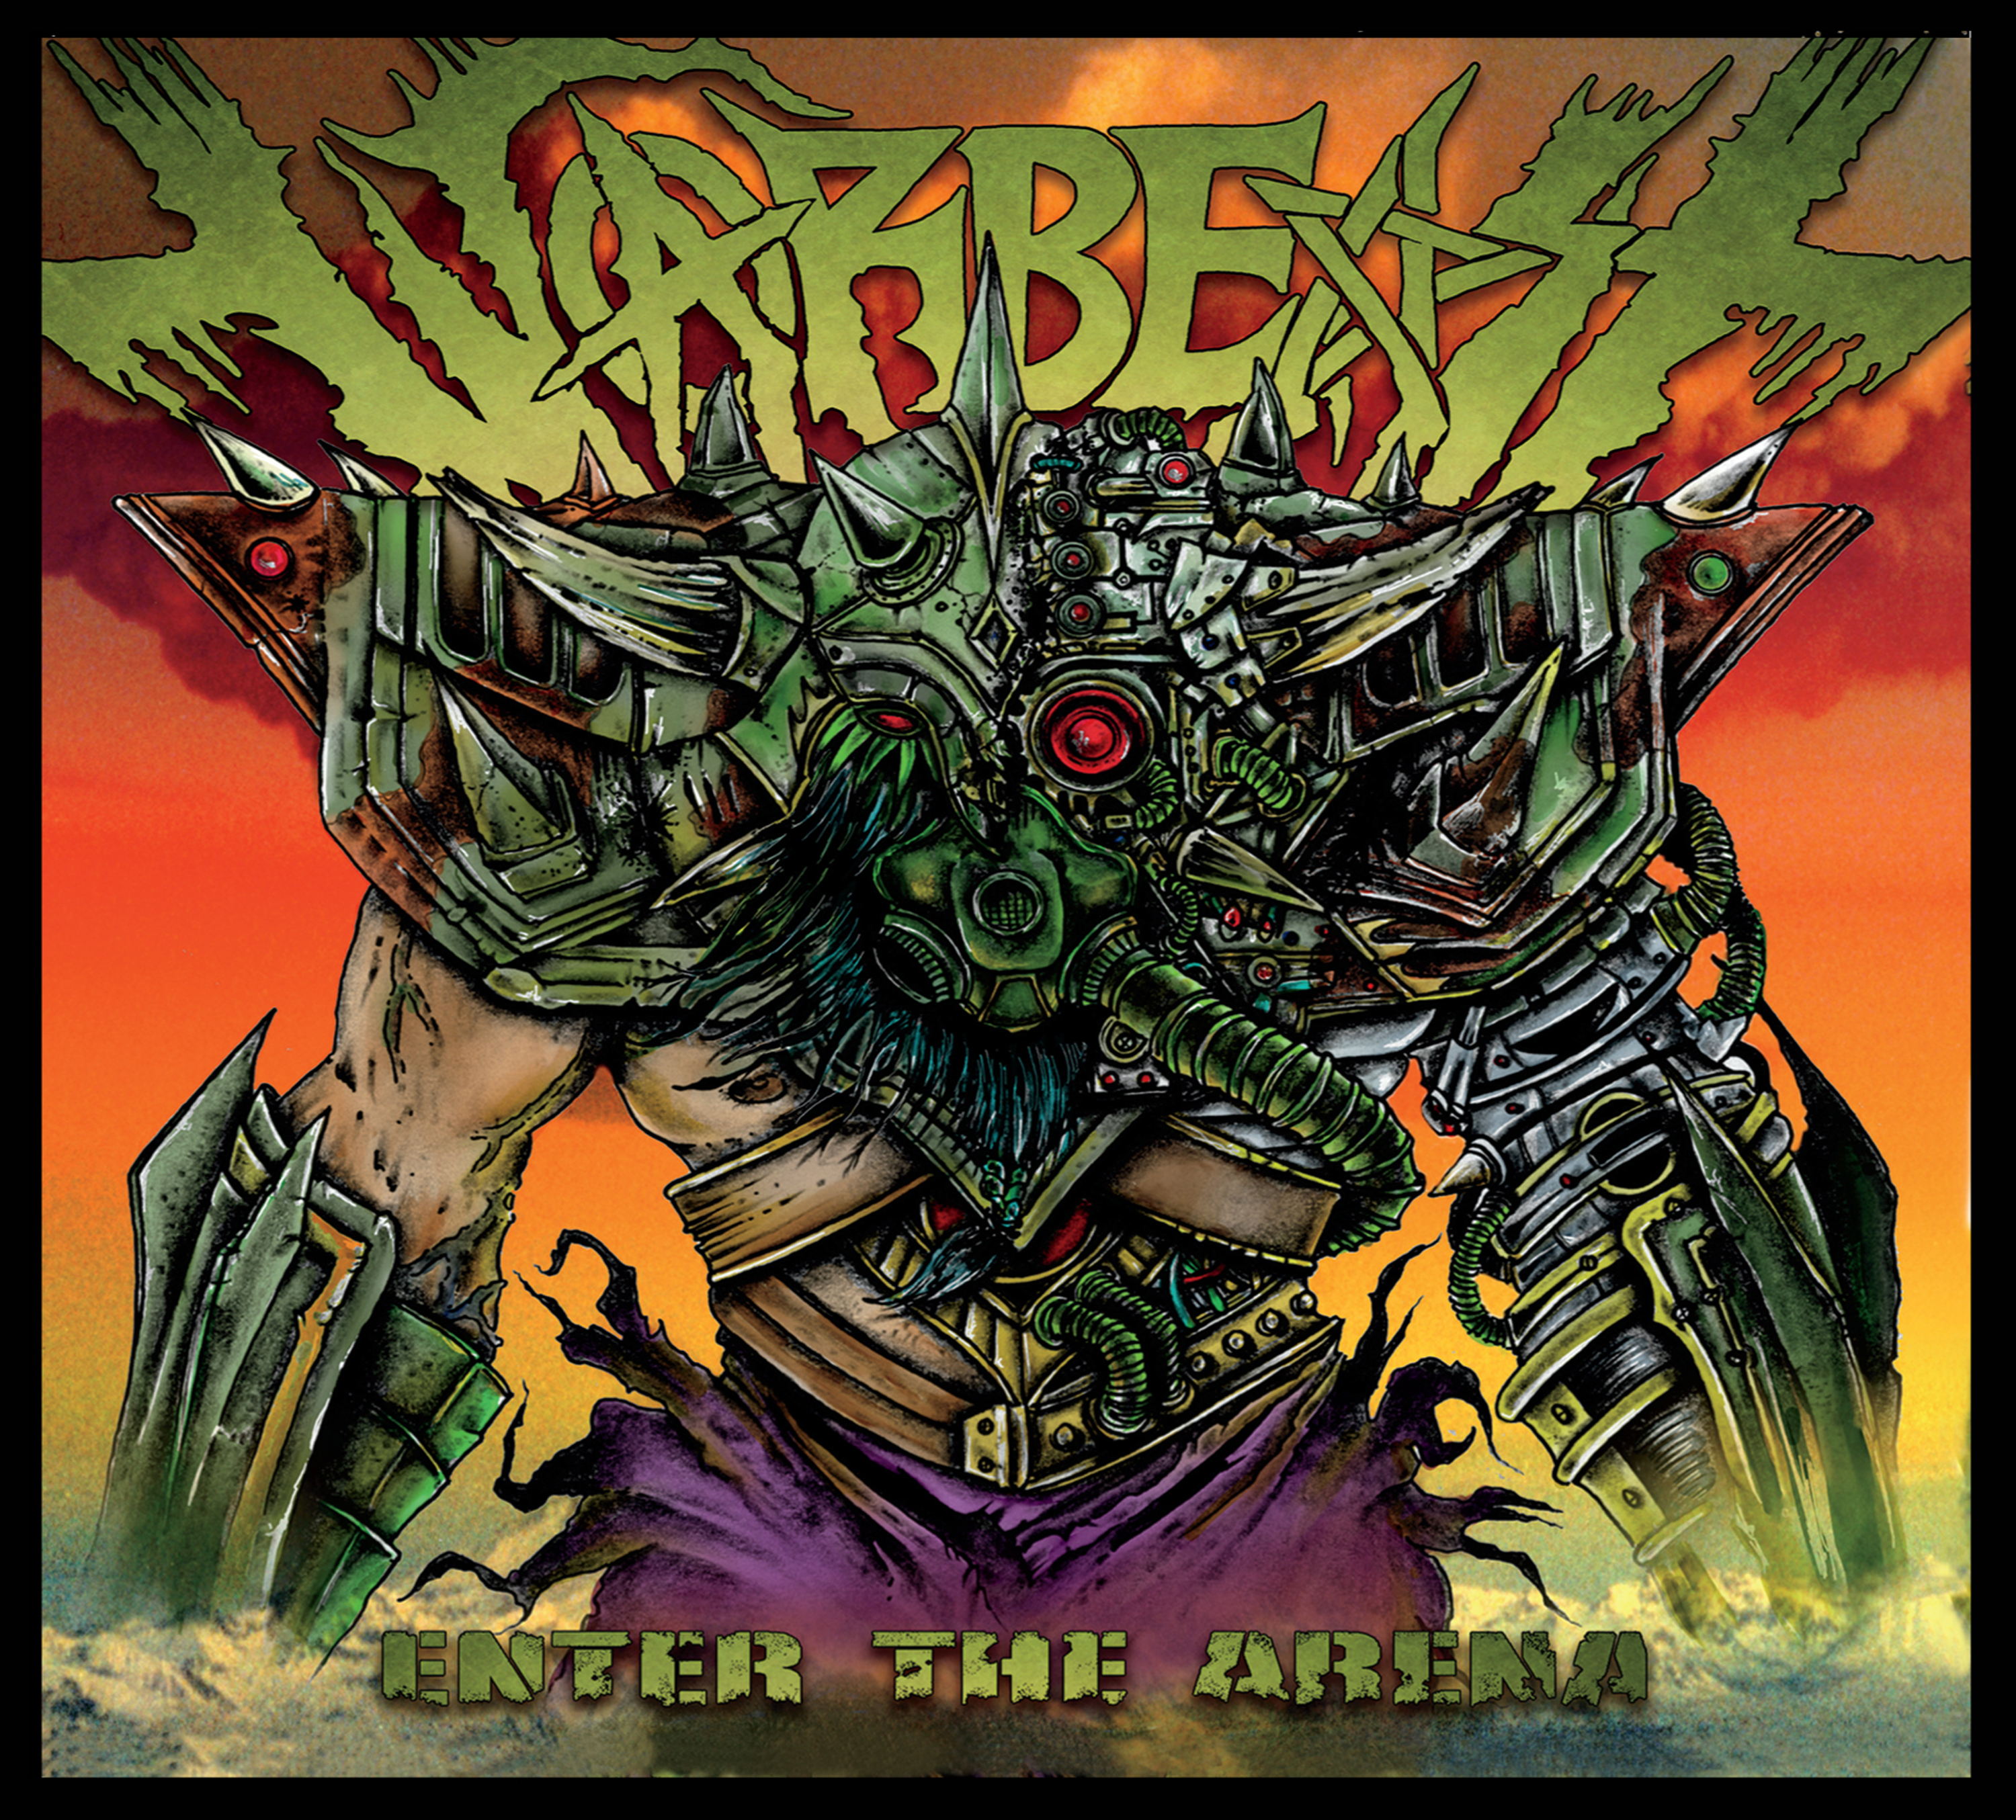 Warbeast - enter the arena cover